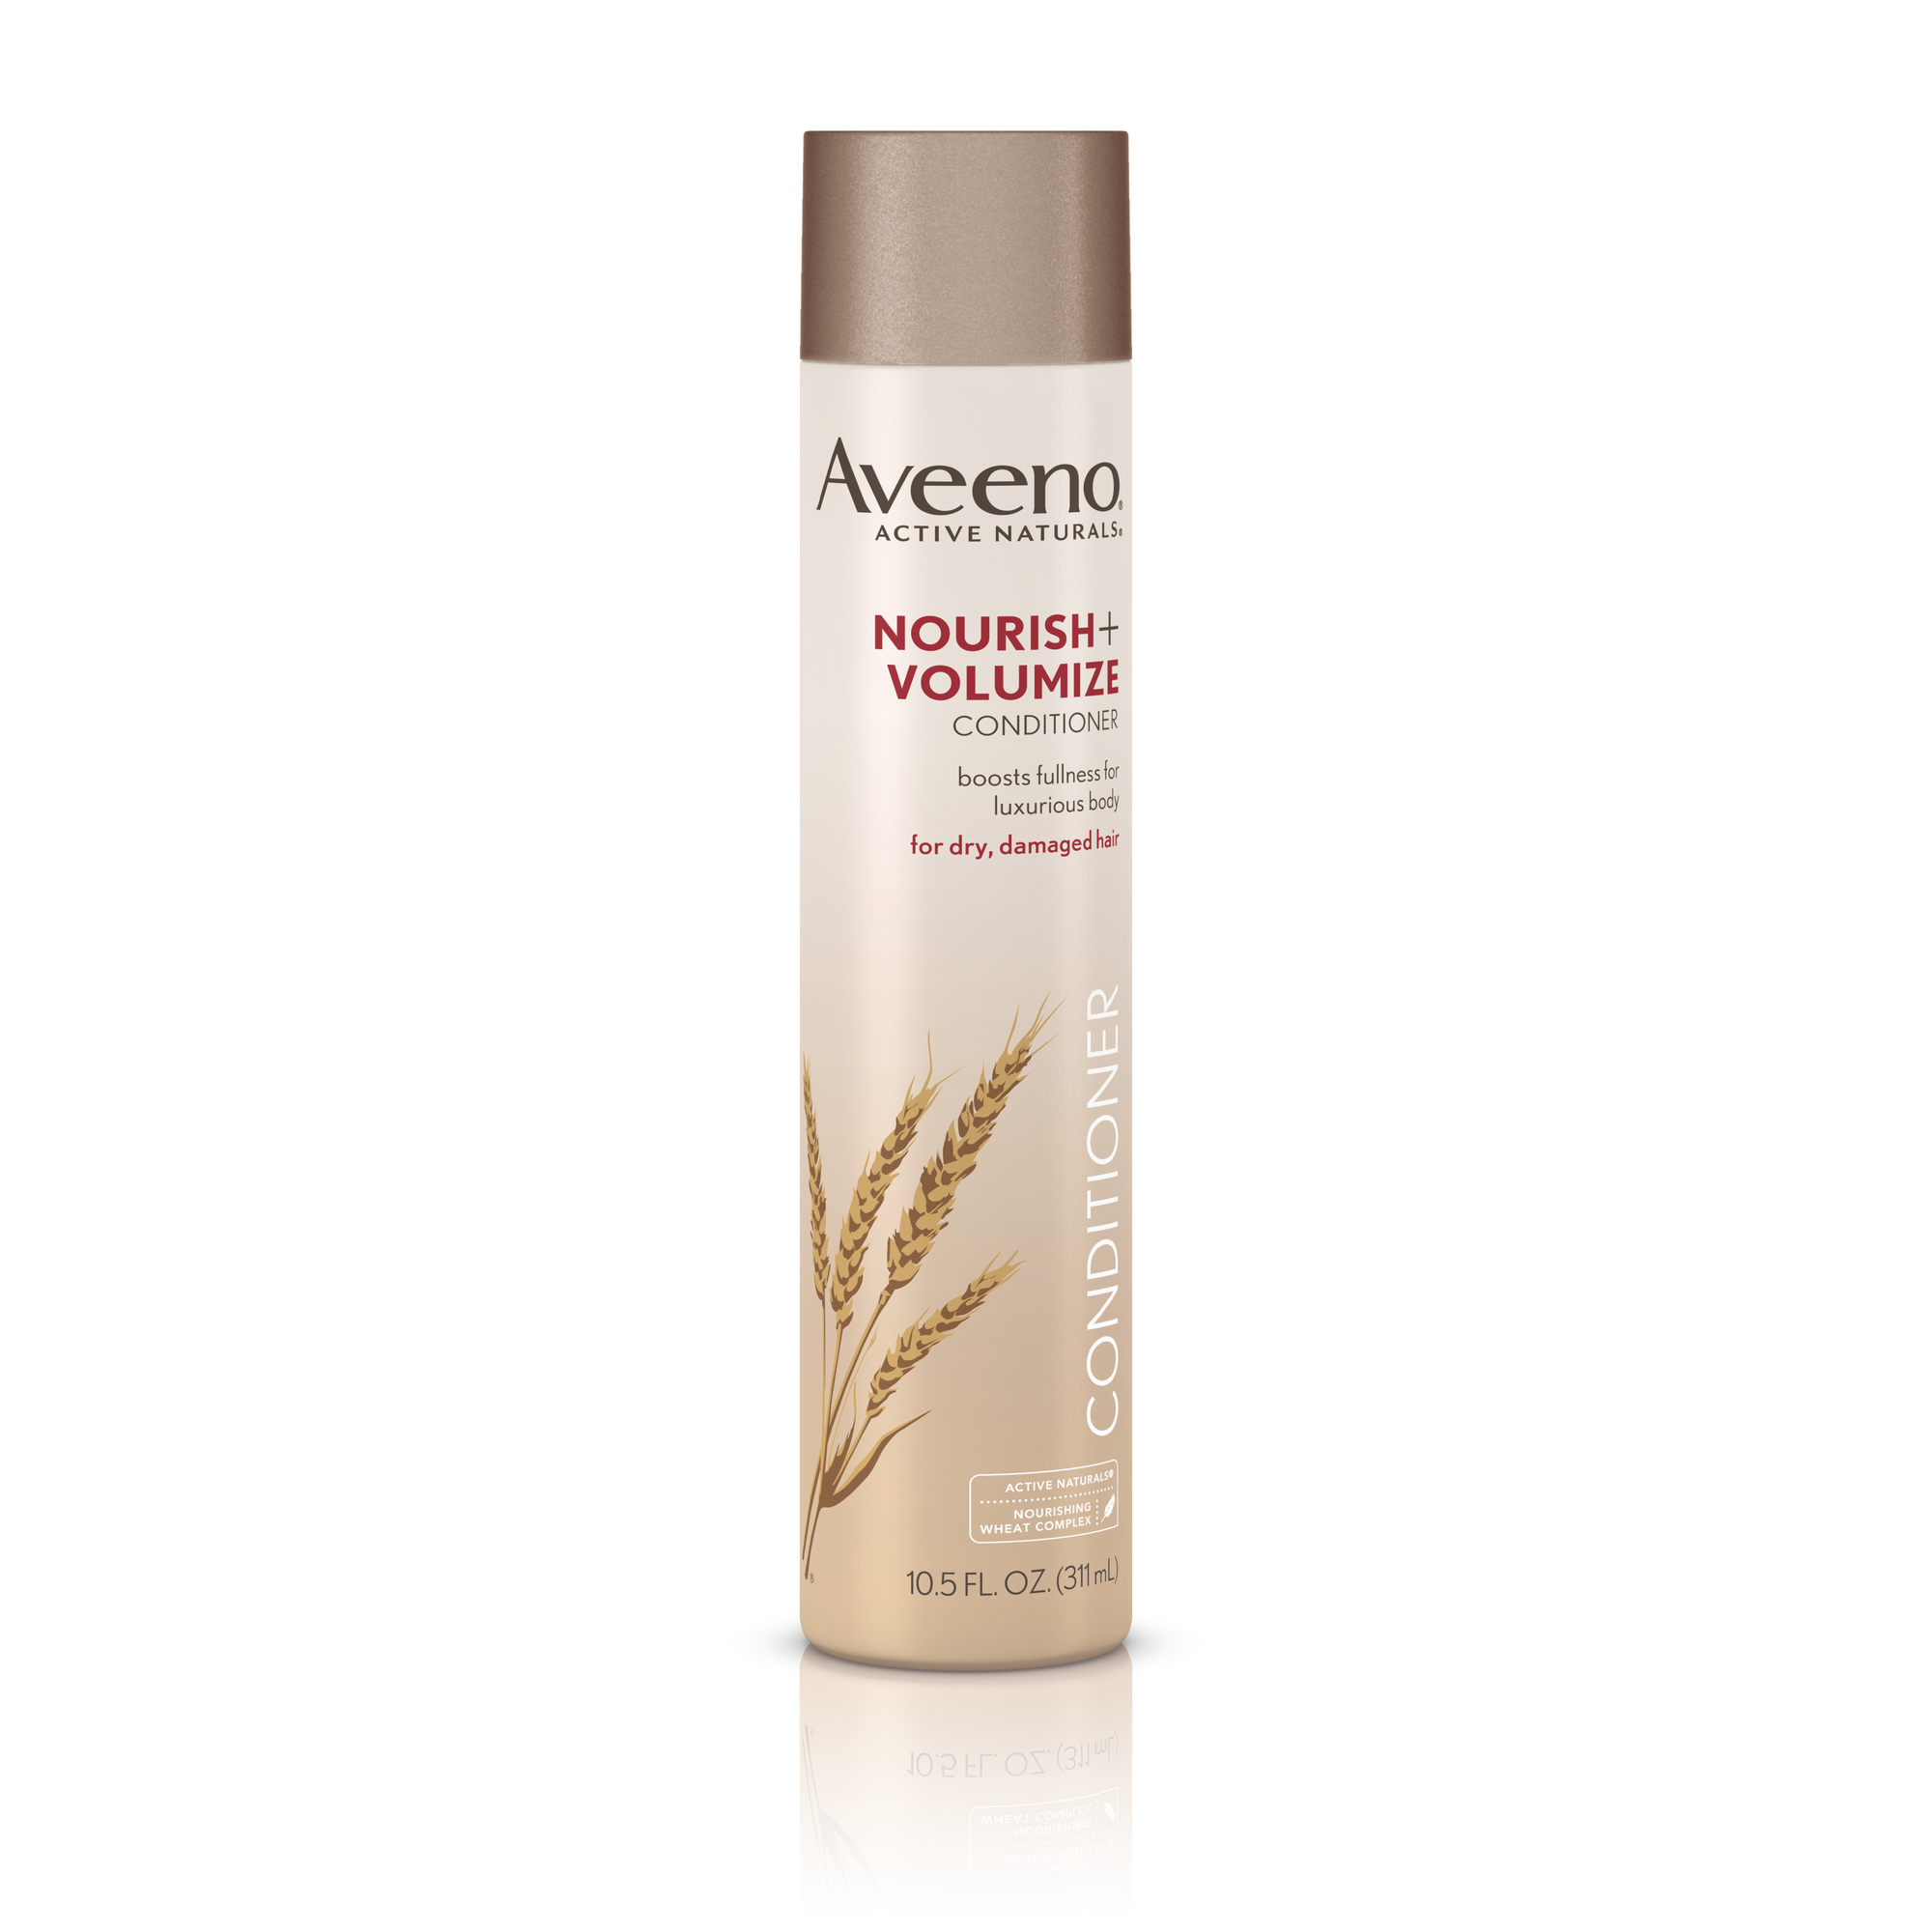 AVEENO ACTIVE NATURALS Nourish+Volumize Conditioner 10.50